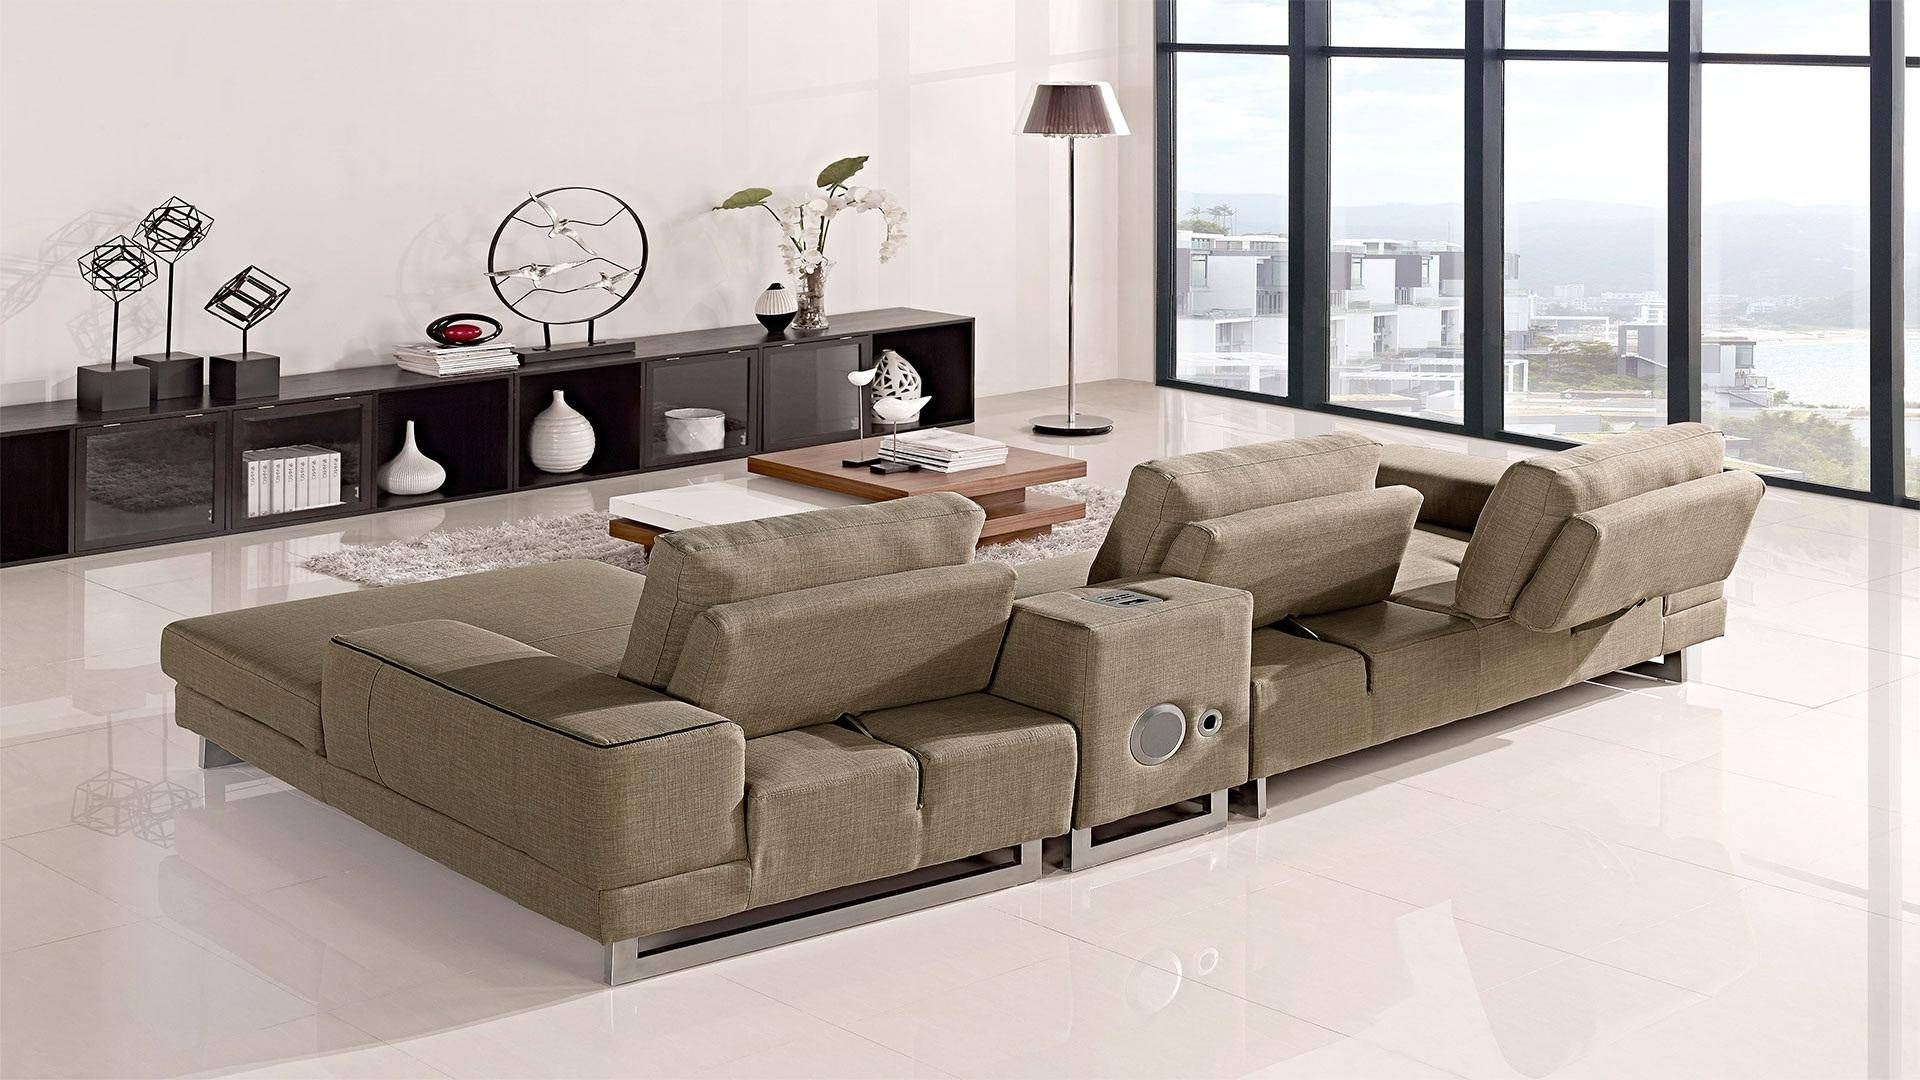 Pleasing At Home Usa Adele Ultra Modern Beige Fabric Sectional Sofa Ncnpc Chair Design For Home Ncnpcorg